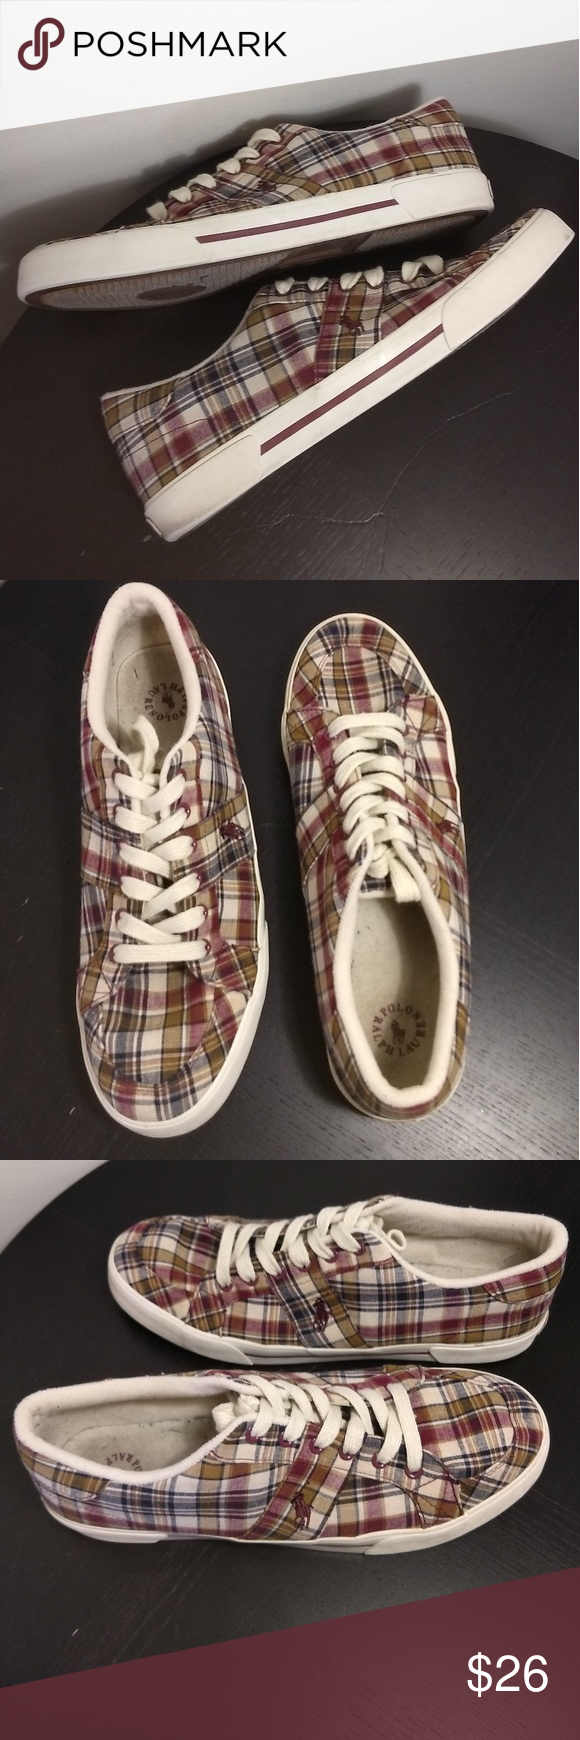 Ralph Lauren POLO Humberto Madras Plaid Shoes GUC POLO Ralph Lauren Humberto Sne Source by tennisshoeoutfitwinter0694 shoes outfit